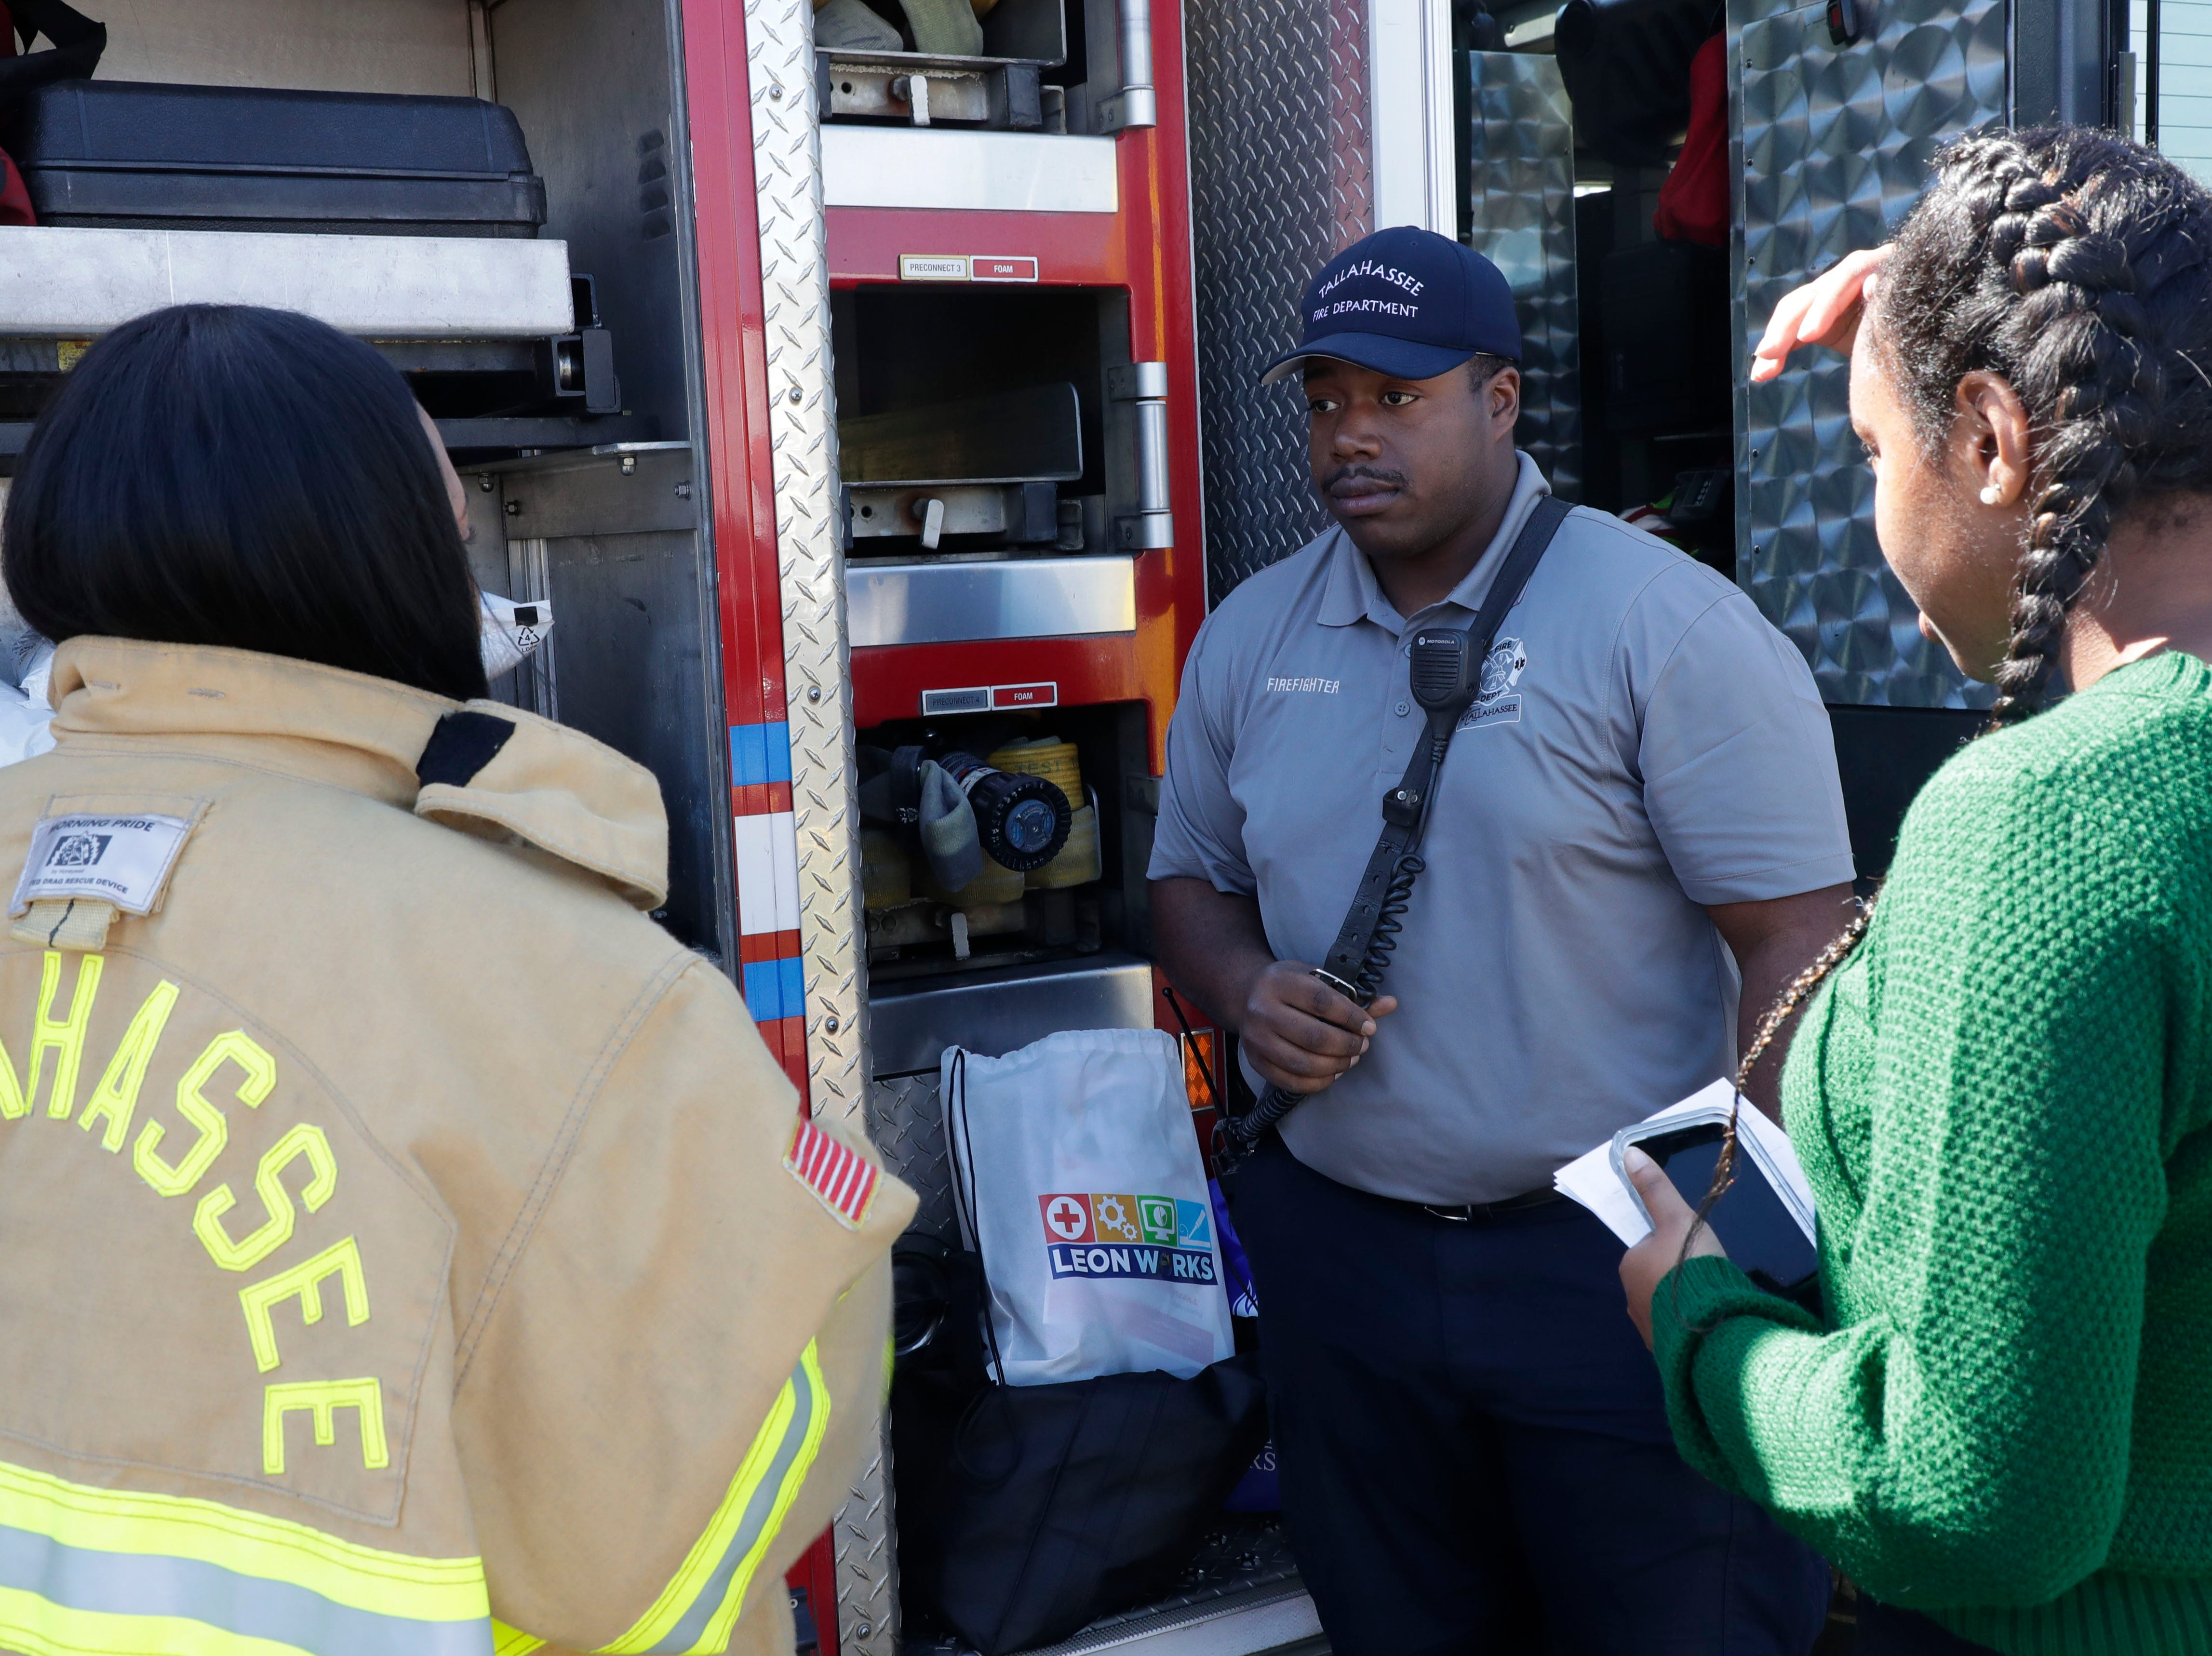 Delano Johnson, a firefighter with the Tallahassee Fire Department, center, talks to Rickards High School seniors, Joy Kelly, left, and Ashley Norton about a future in fighting fires. High school students throughout Leon County attended the Leon Works Expo at the Tucker Civic Center Friday March 8, 2019.